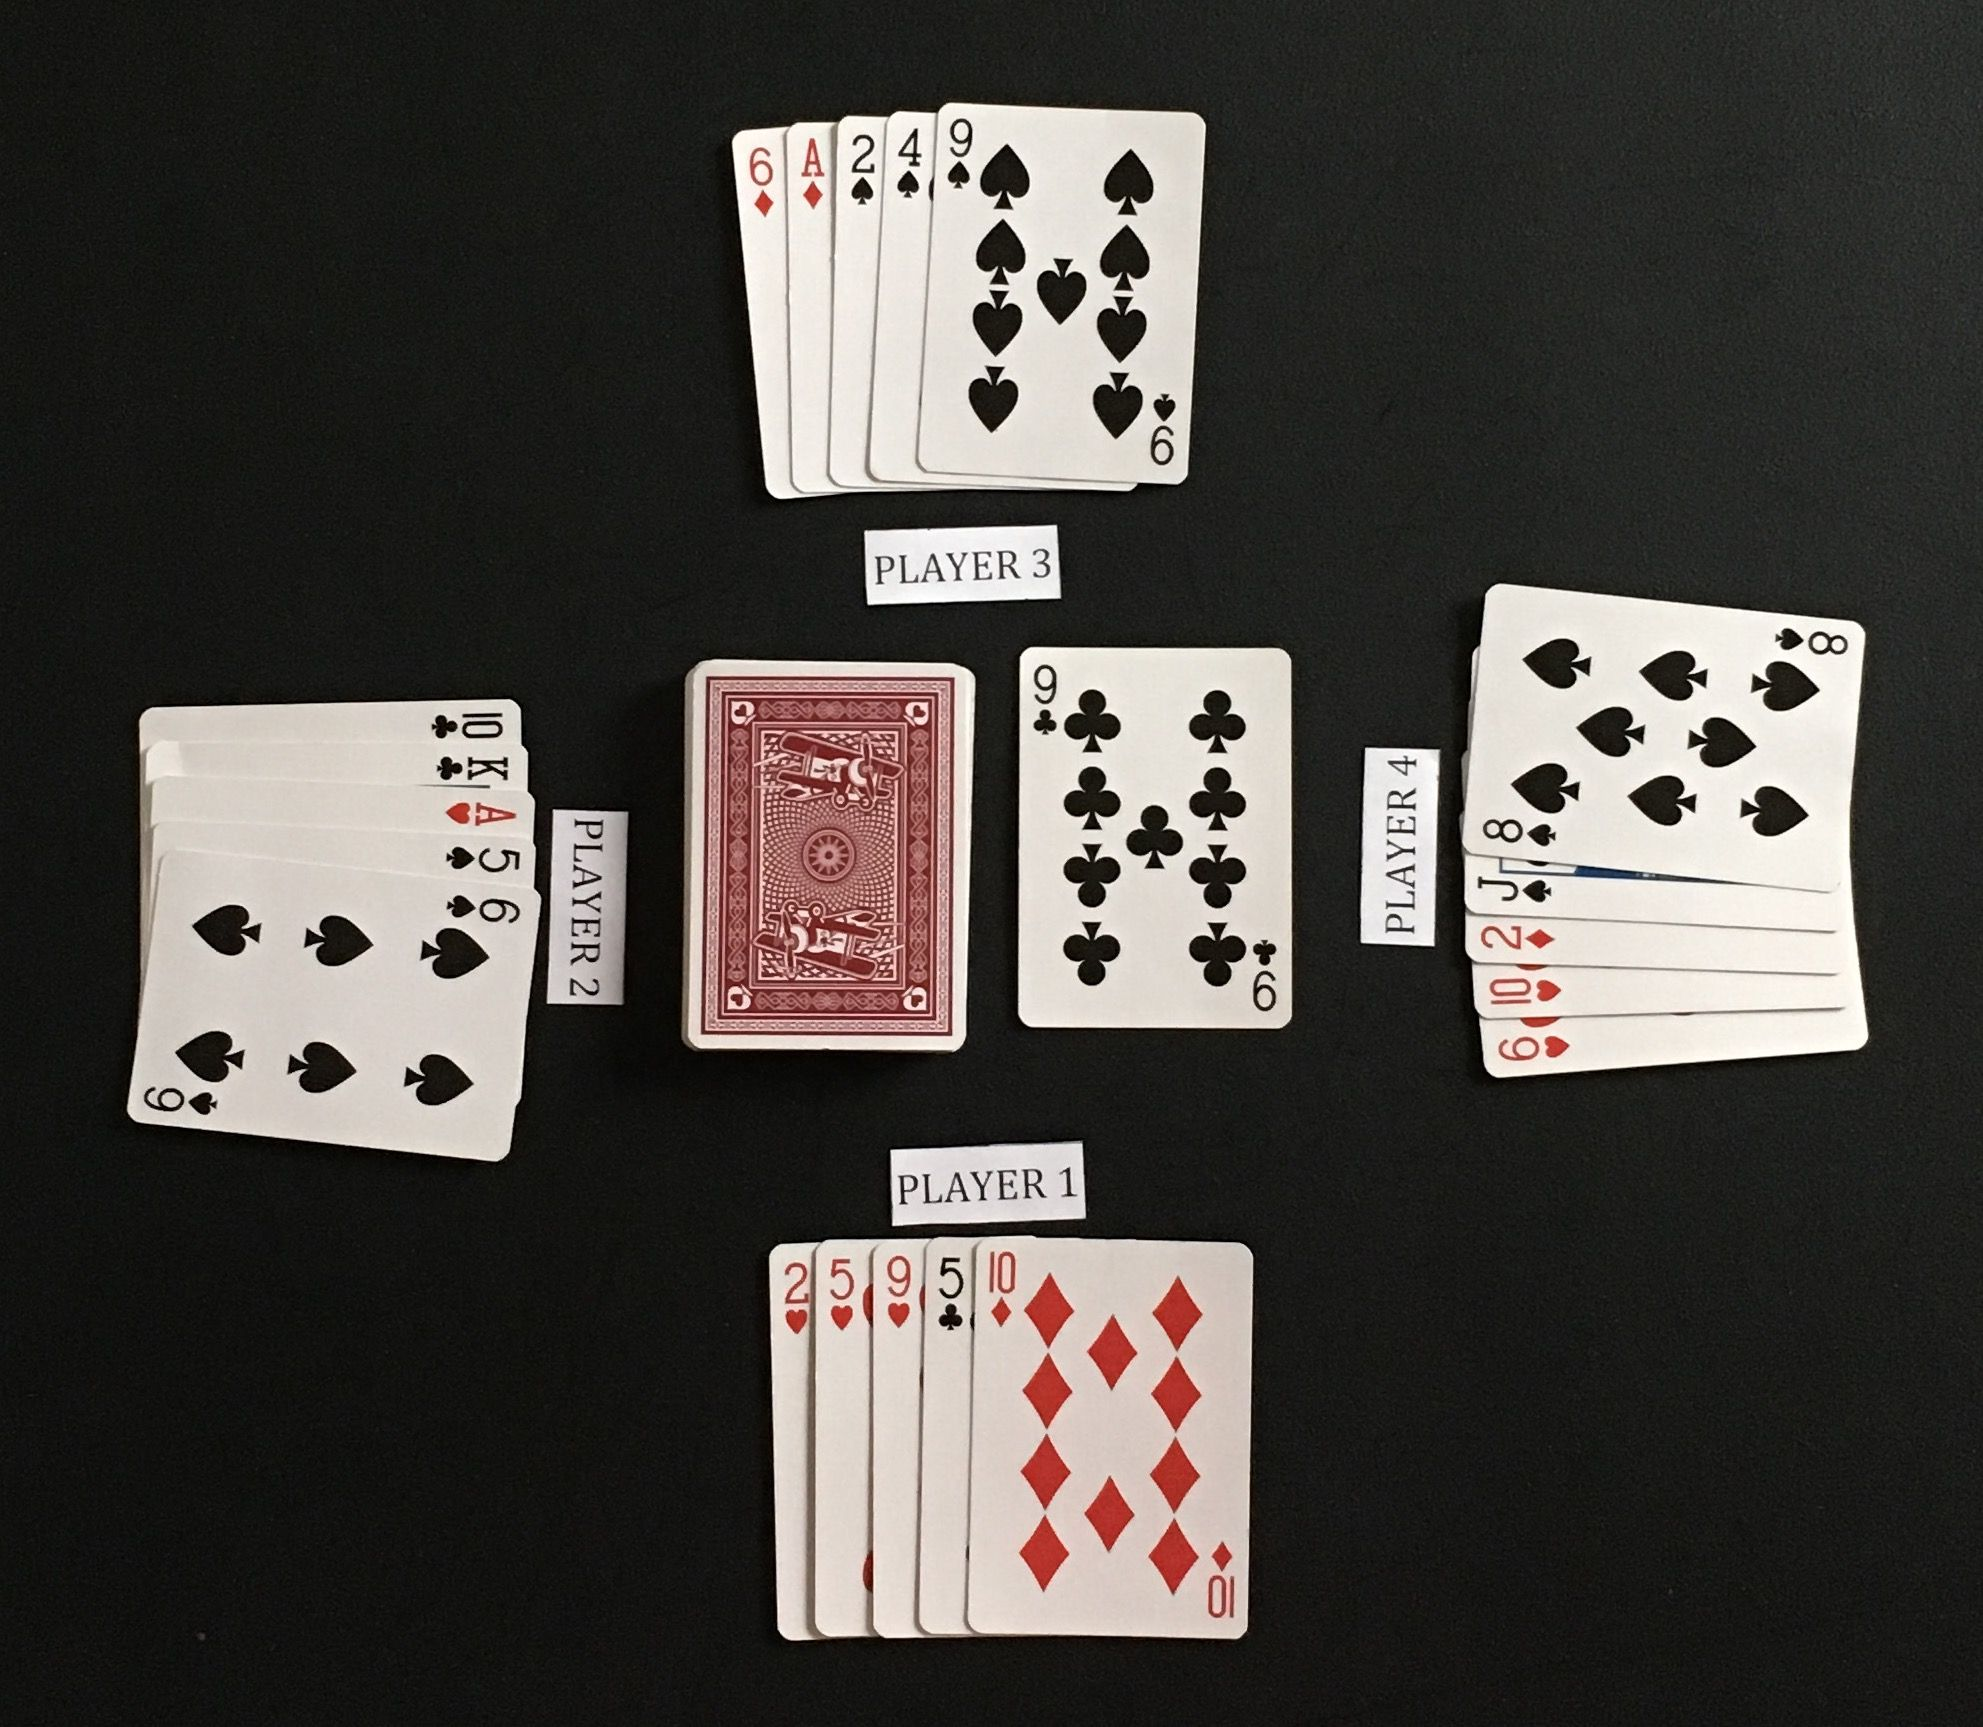 How To Play Crazy Eights Crazyeights Crazy8s Cardgames